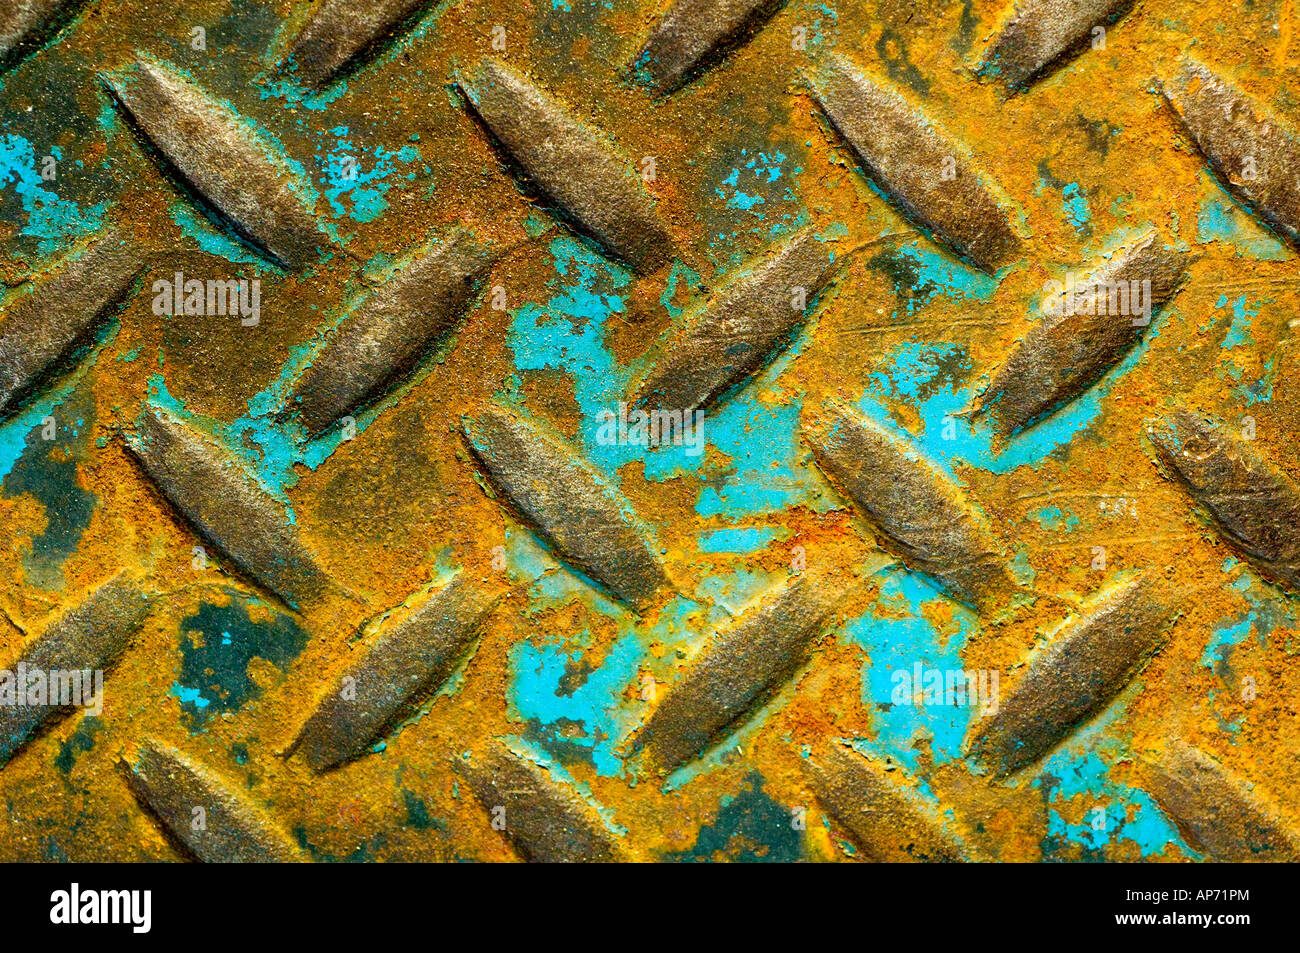 Turquoise paint on rusted patterned metal. - Stock Image